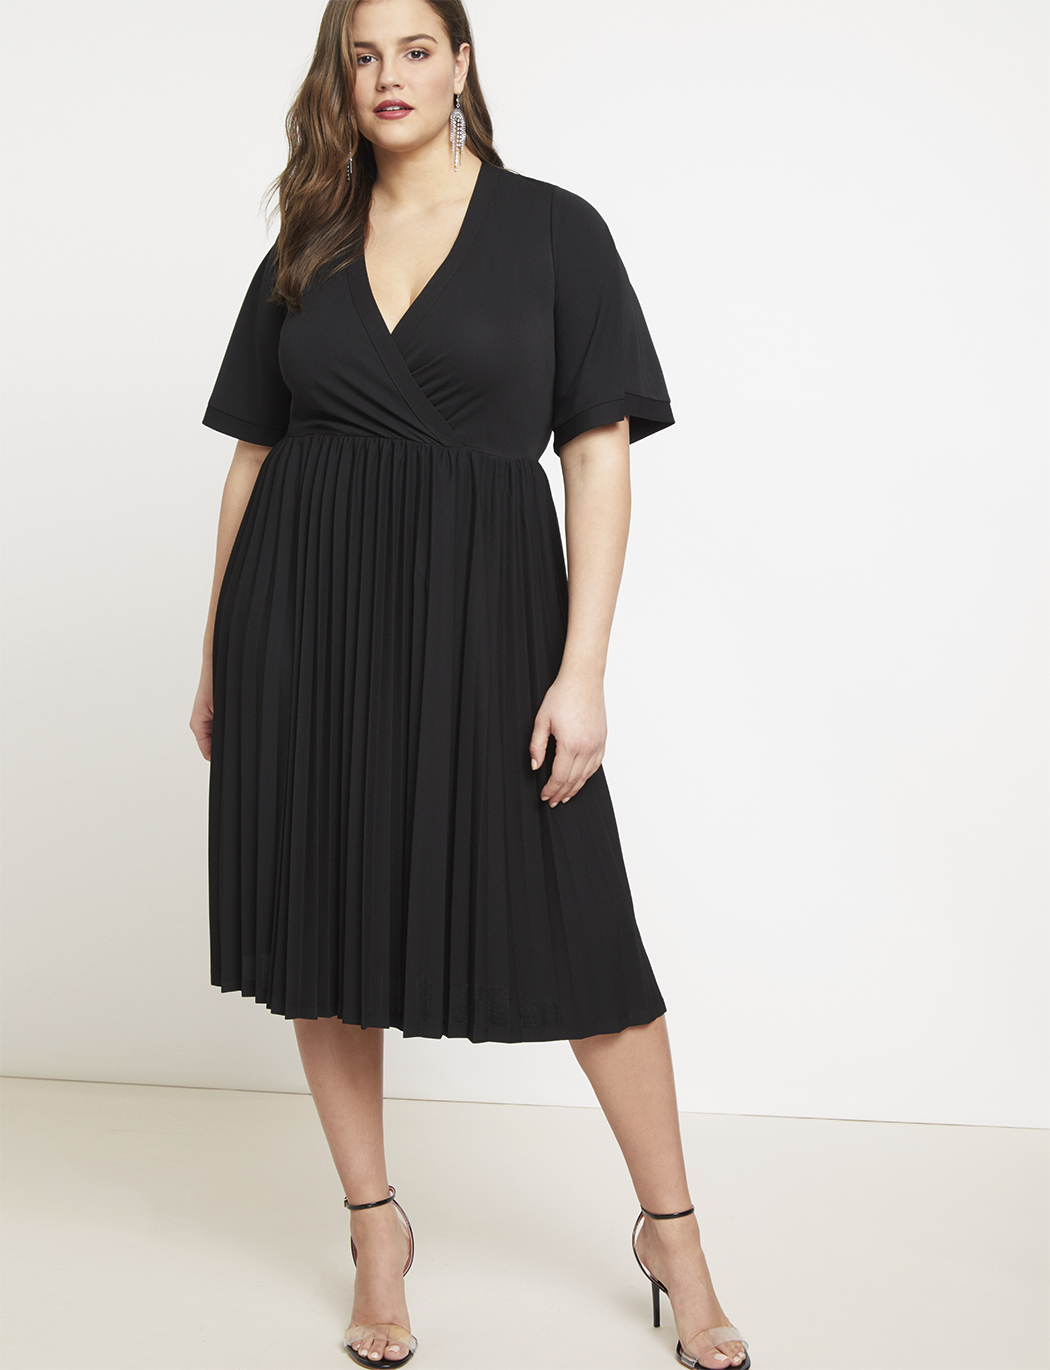 4c0294887f0 Cross Front Pleated Dress | Women's Plus Size Dresses | ELOQUII